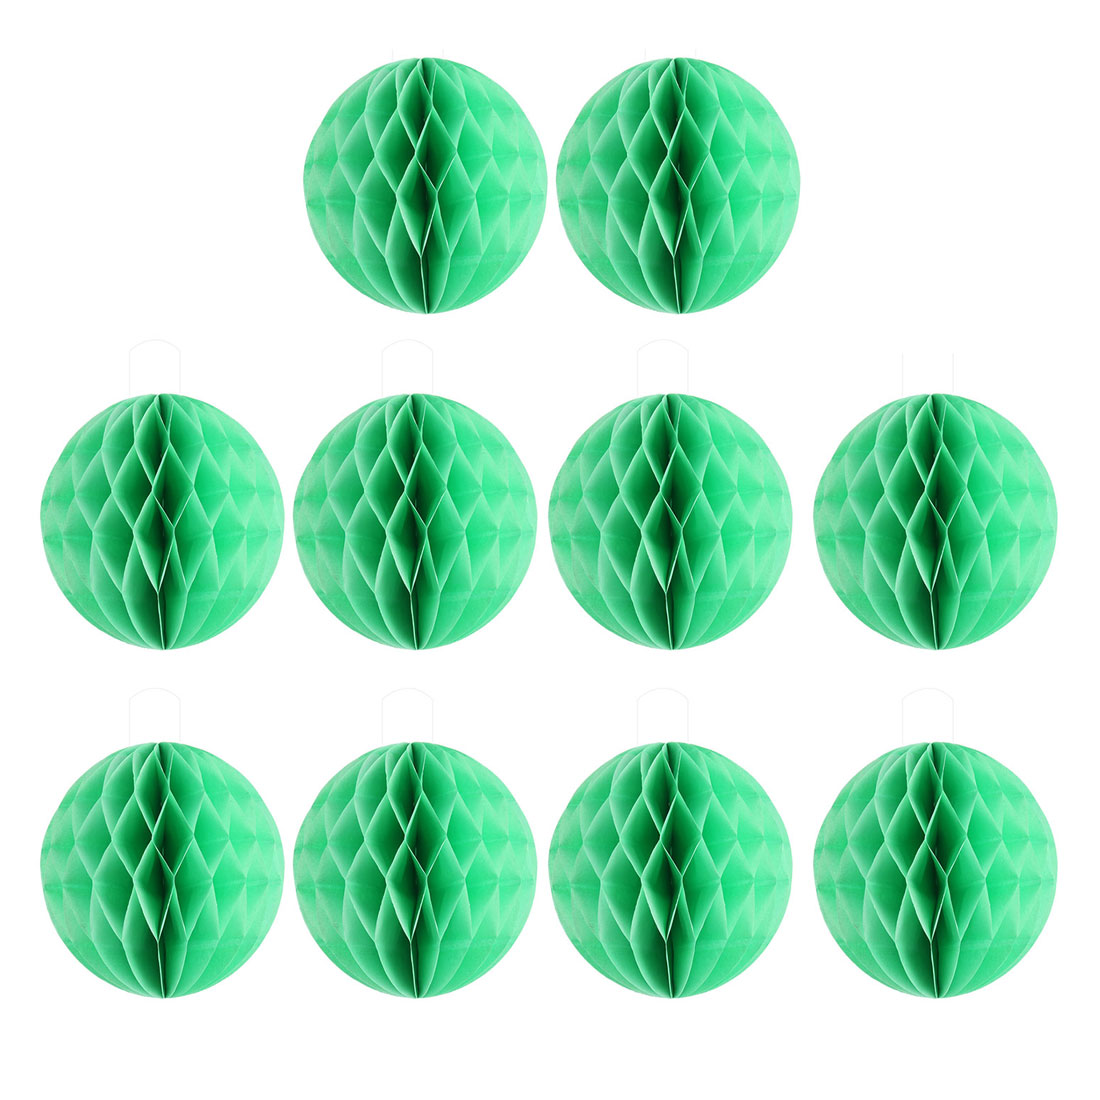 Wedding Party Paper Round Hanging Lantern Lamp Honeycomb Ball Decor Green 6 Inch Dia 10pcs